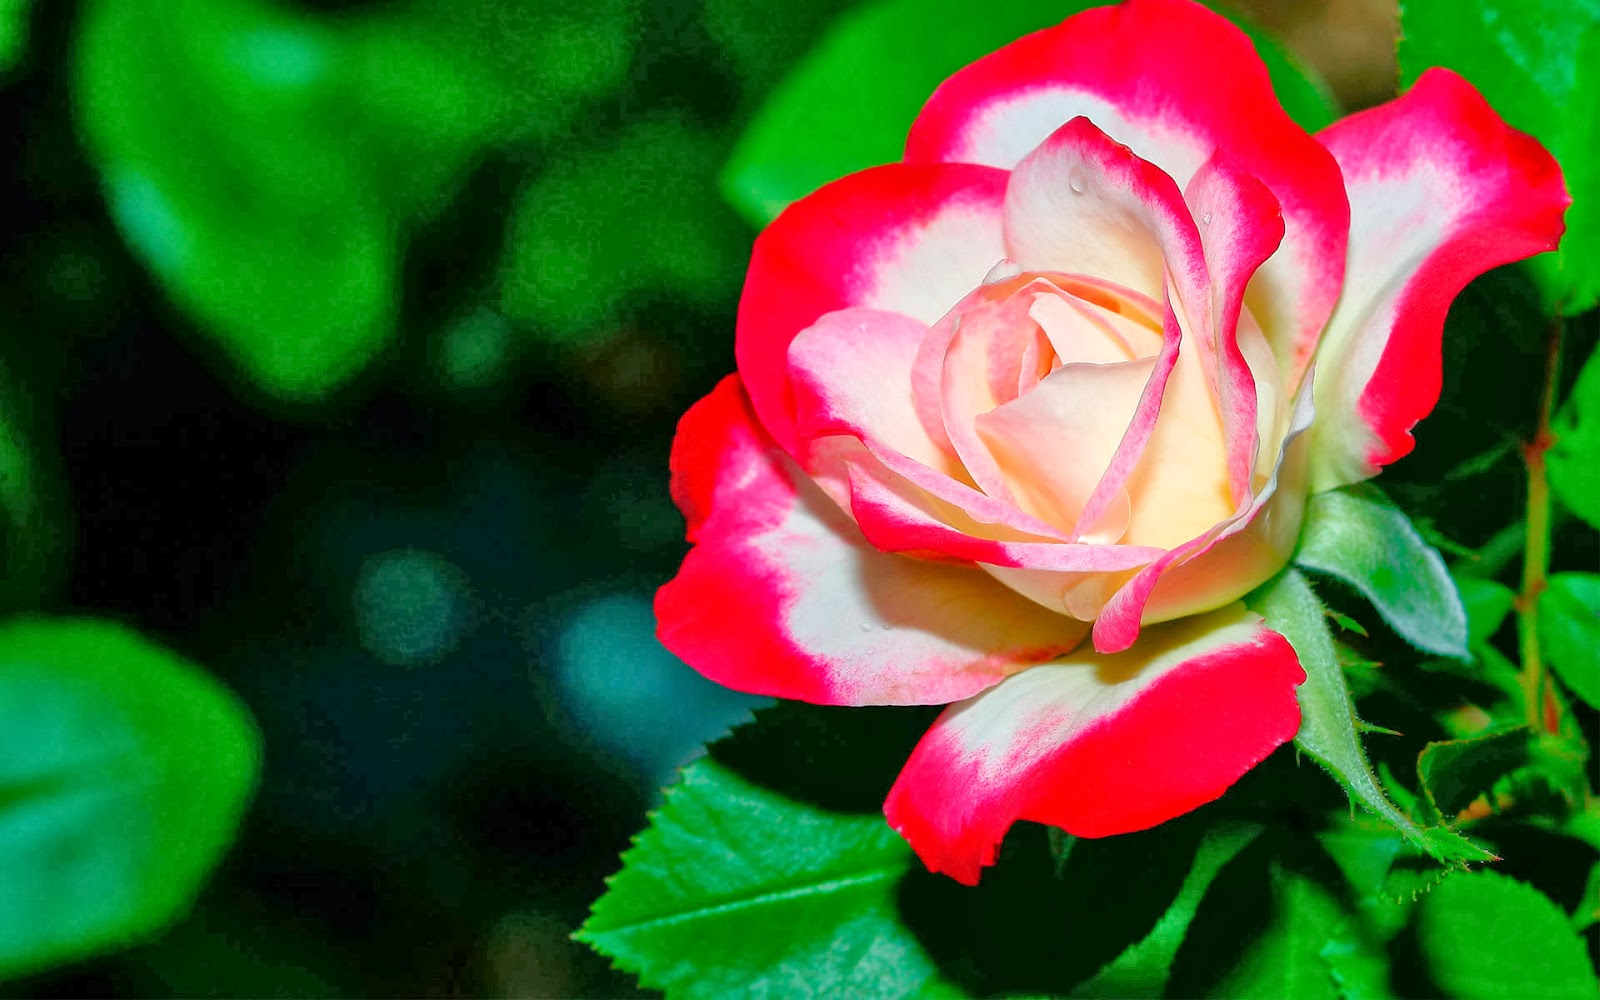 Hd wallpapers nature flowers rose